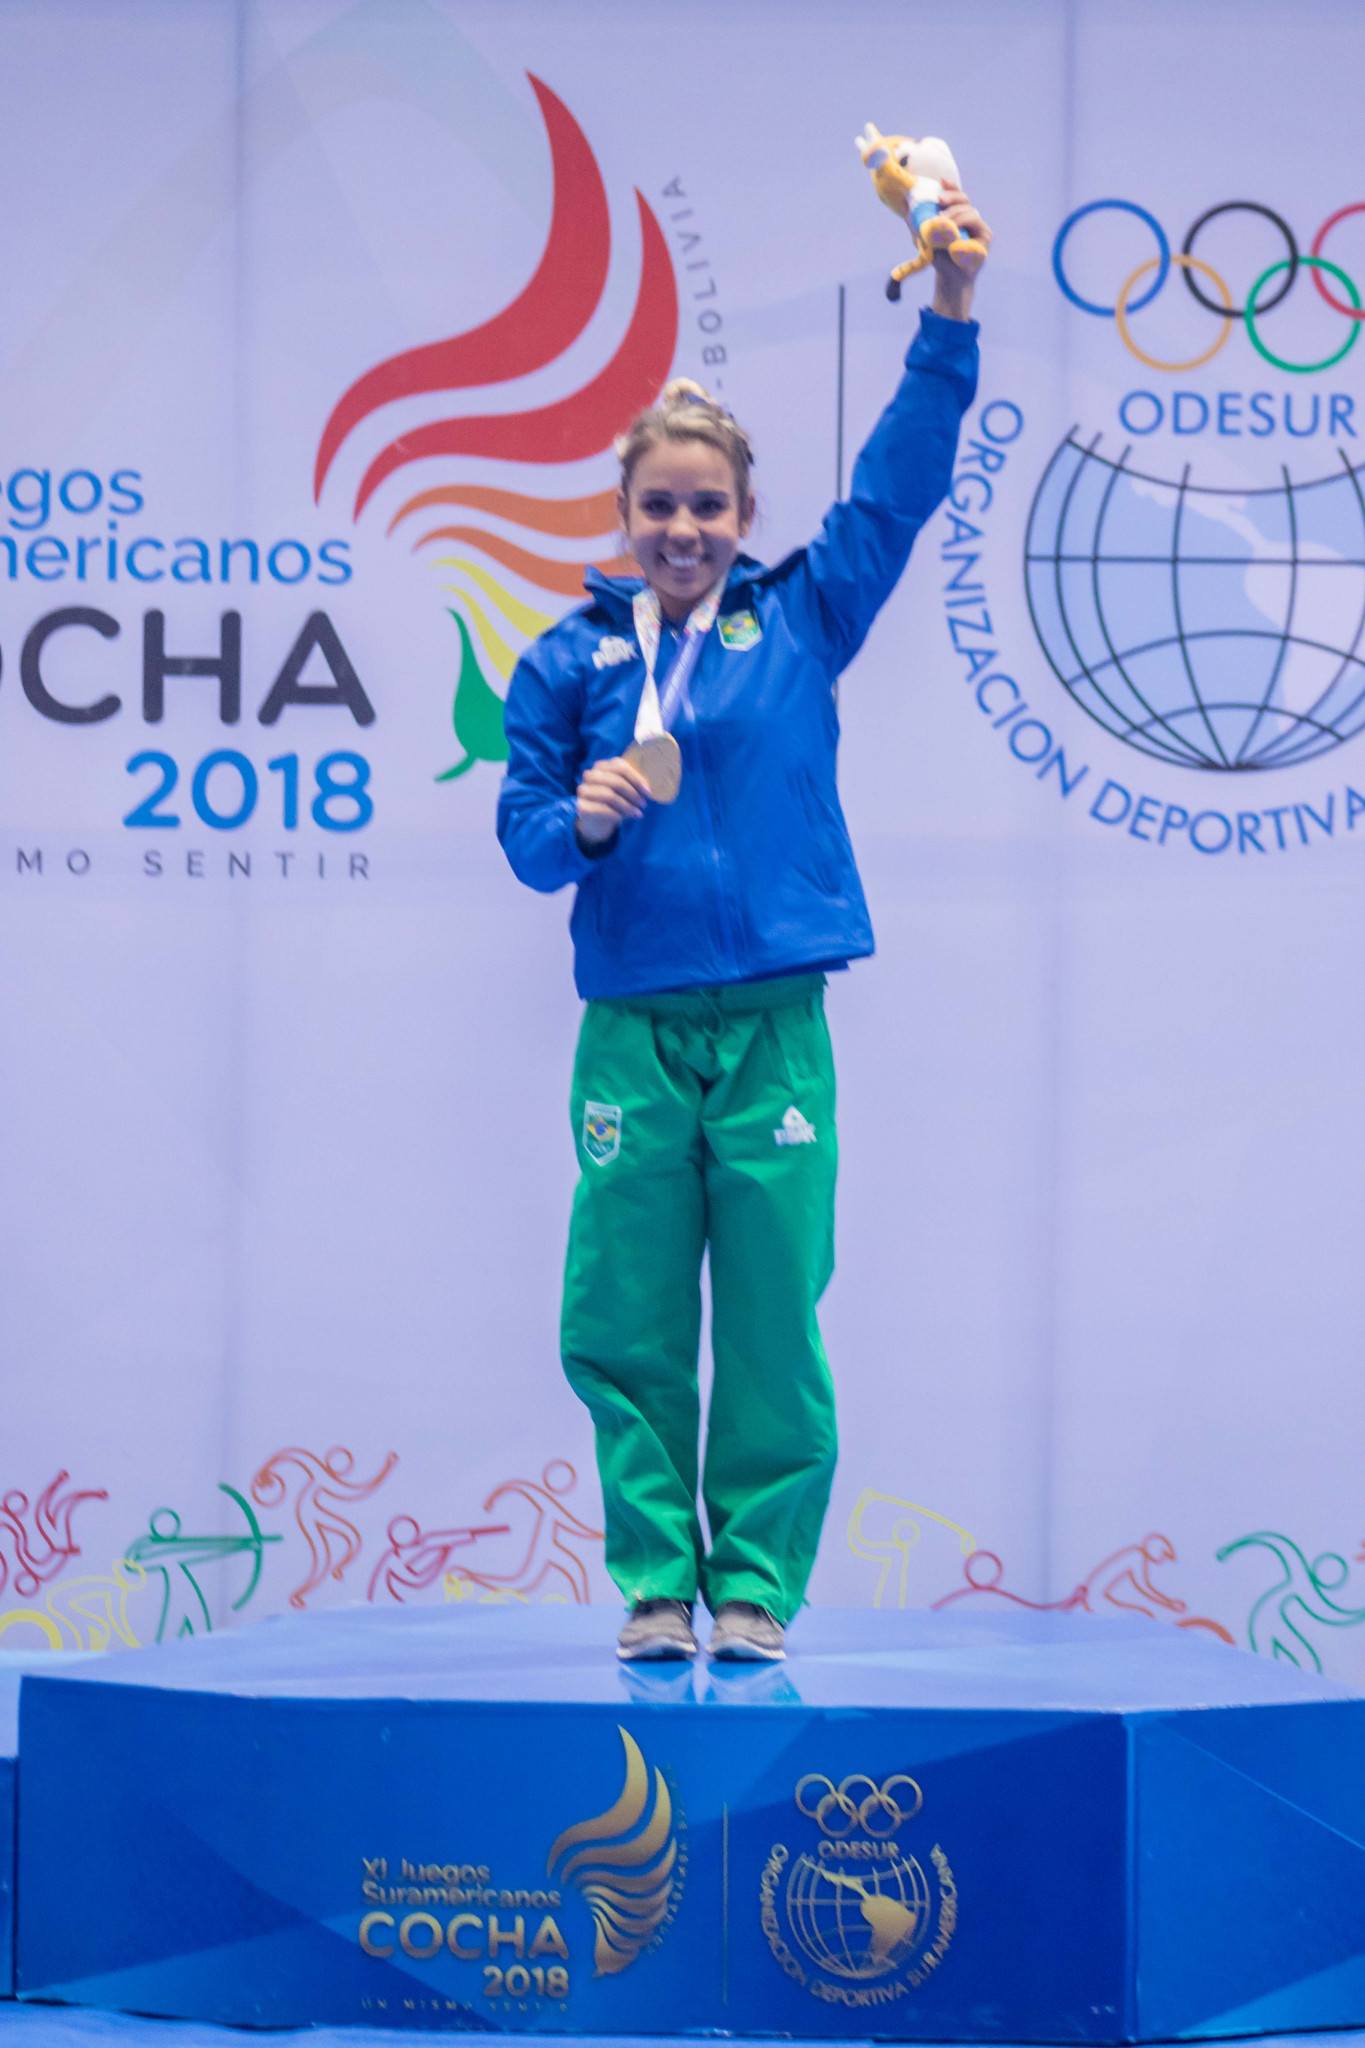 Camilla Lopes Gomes helped Brazil retain their spot at the top of the medals table ©South American Games 2018